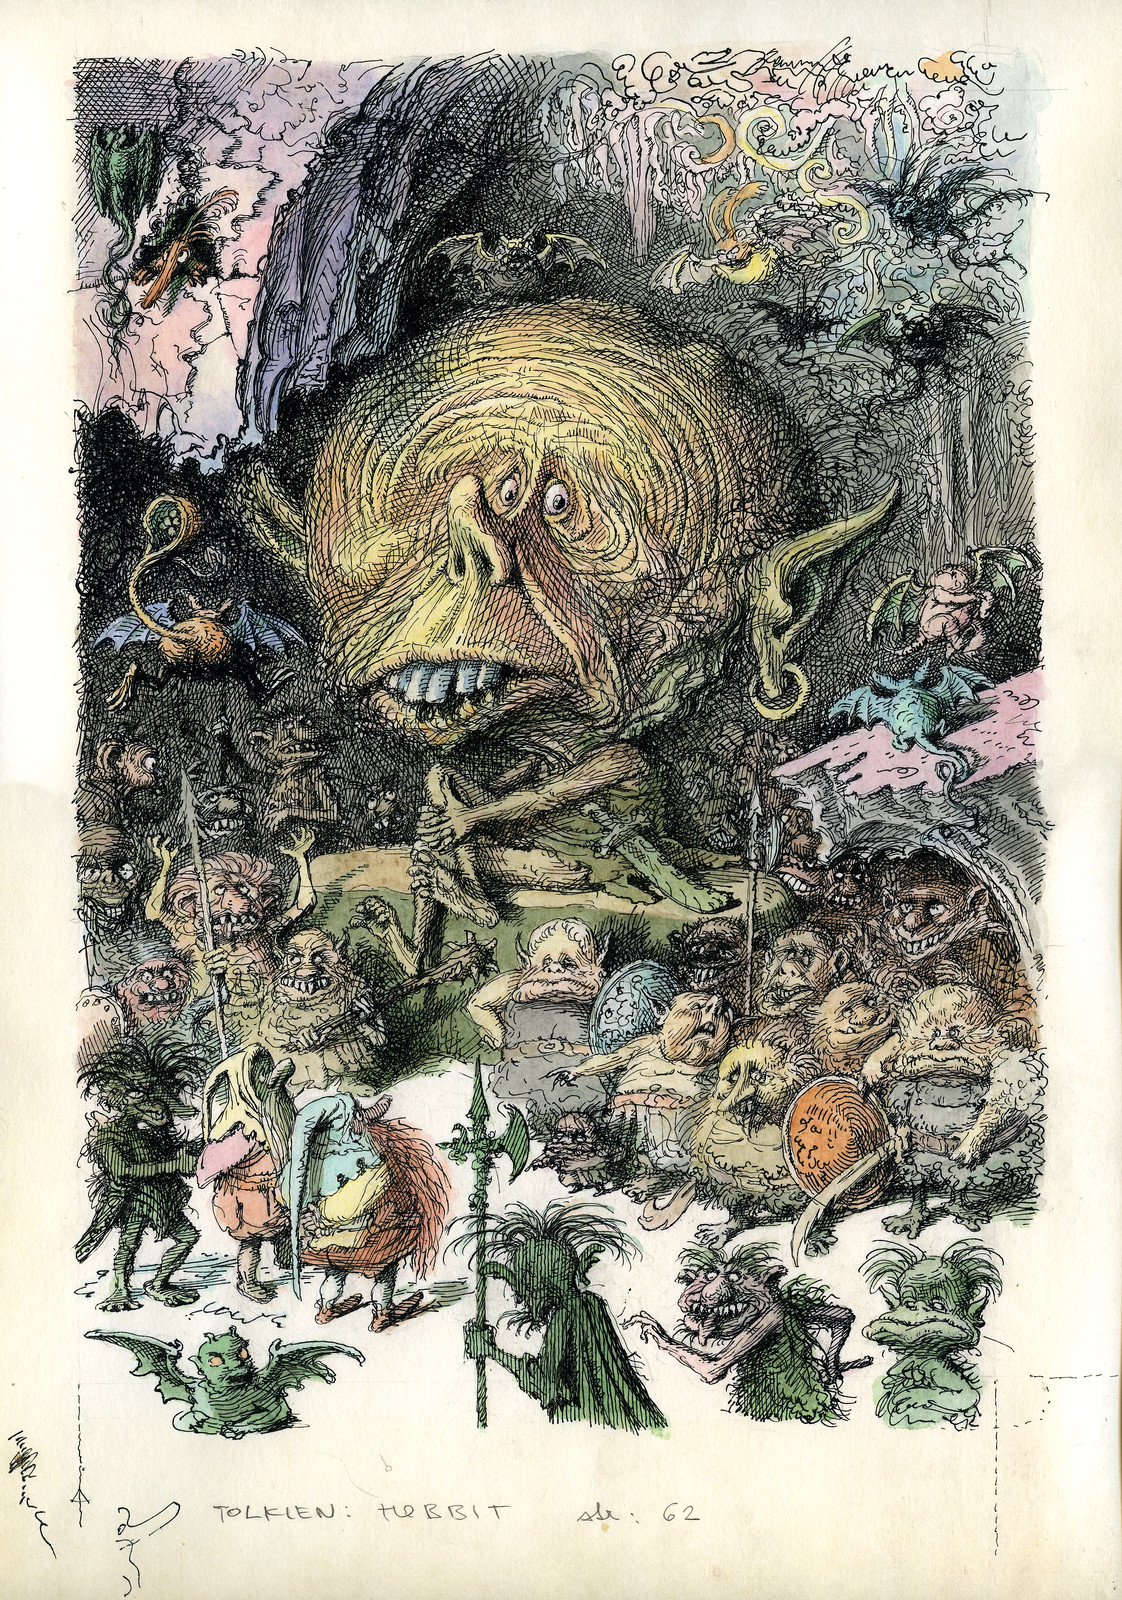 Peter Klucik -The Hobbit, Illustration 03